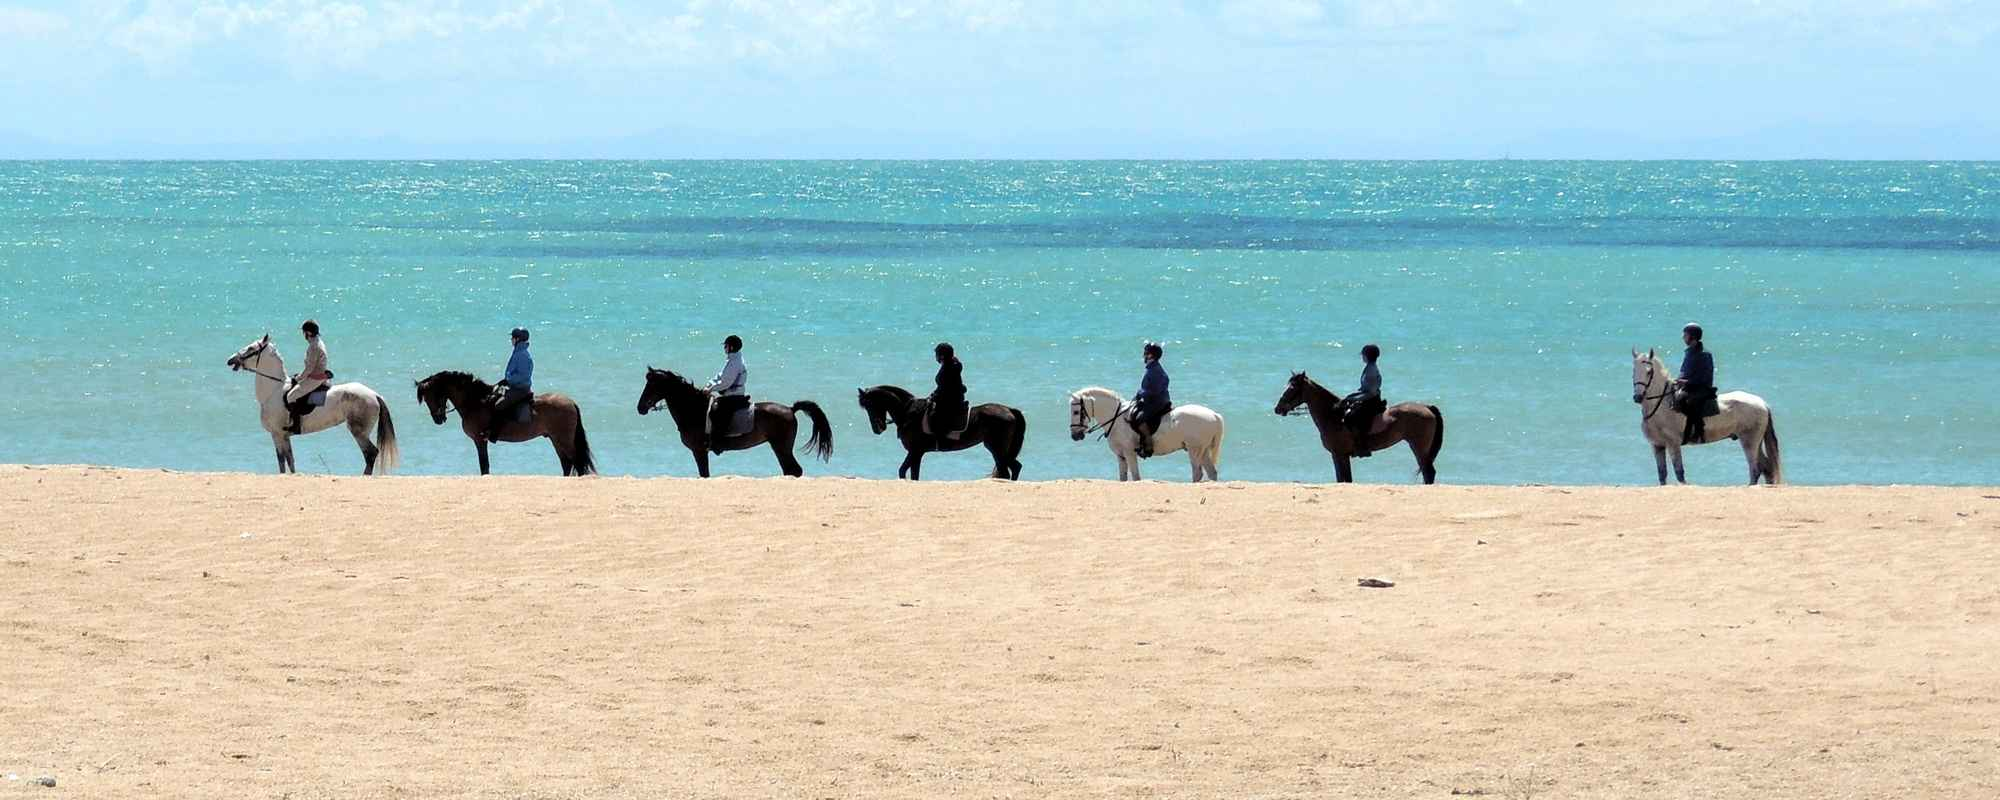 Horse riding holiday in Spain in unspoilt Andalusia. Horseback riding holiday for people who know how to ride.